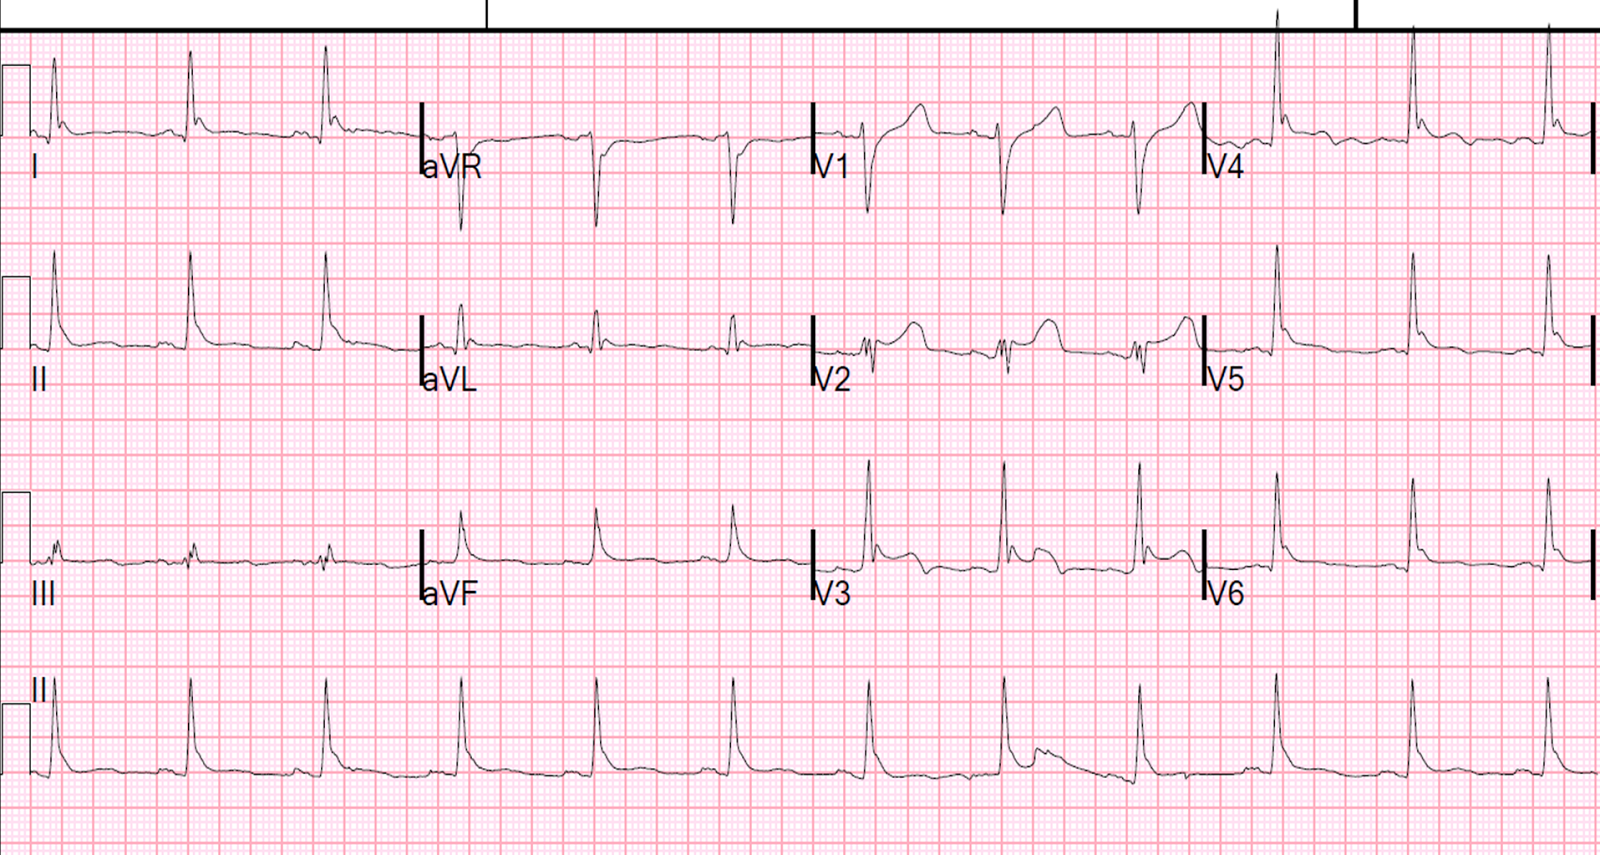 Dr. Smith's ECG Blog: Read this ECG